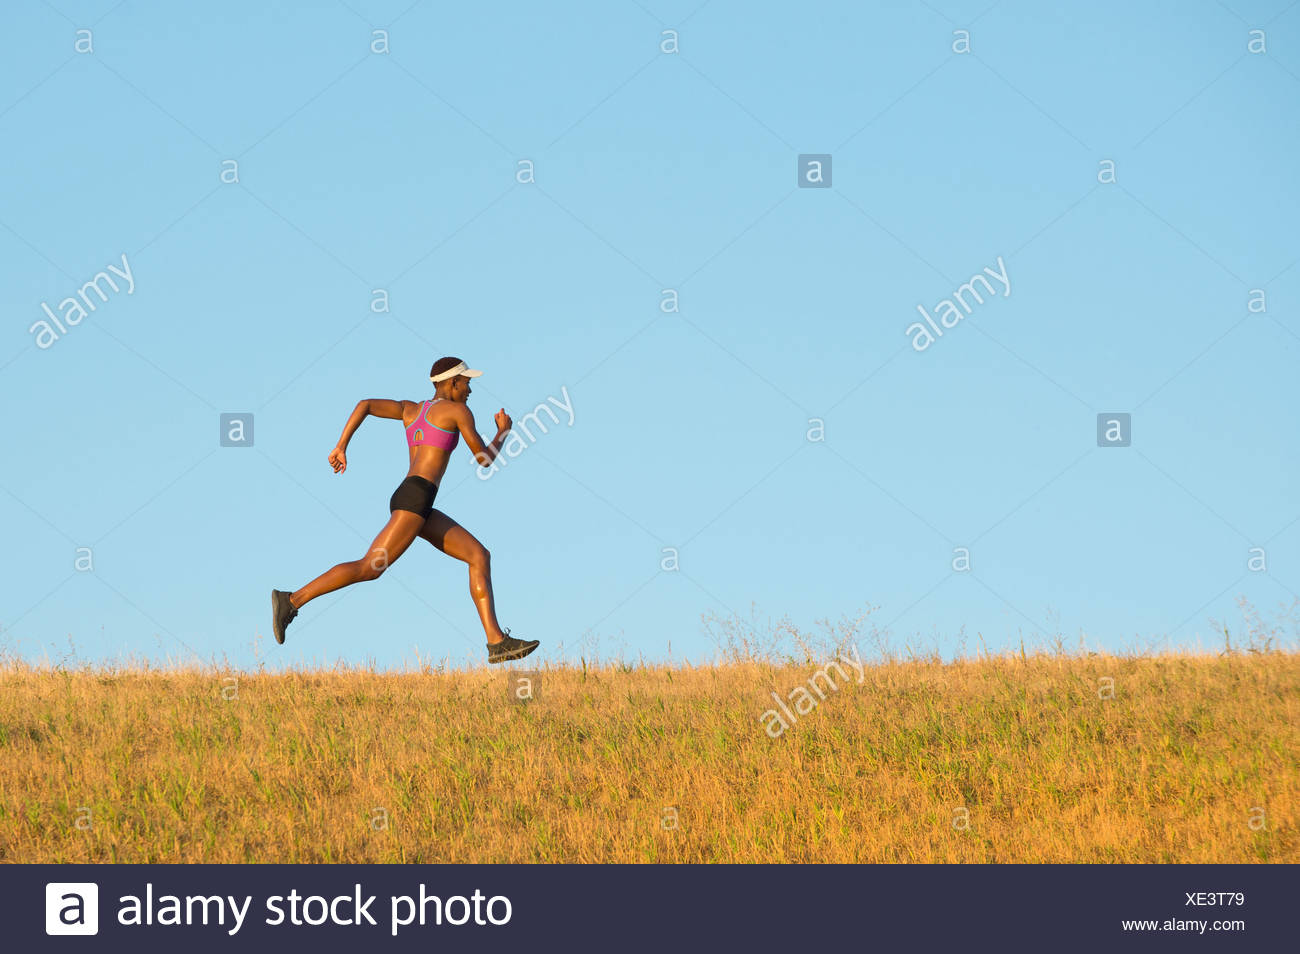 Young woman running across field - Stock Image